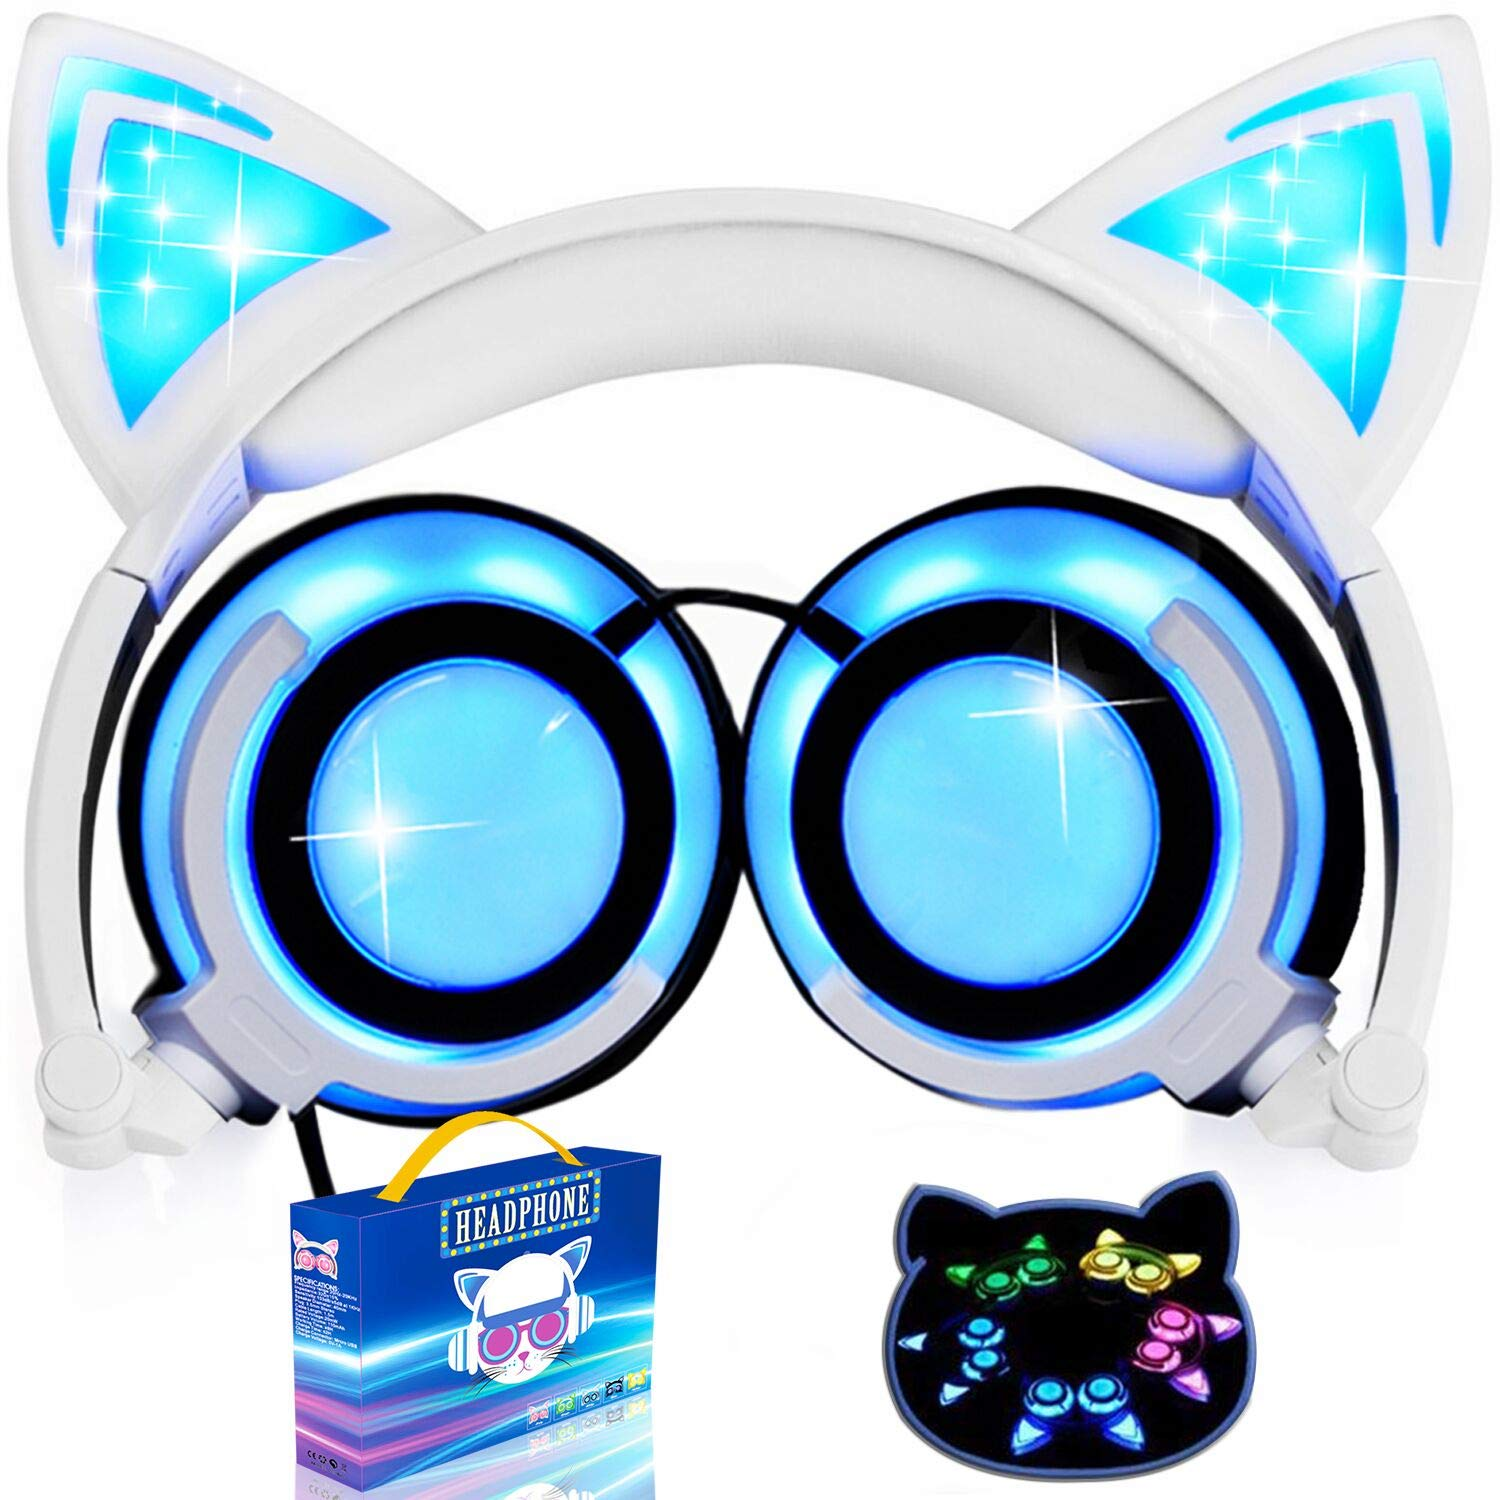 Kids Headphones Cat Ear-Inspired,AMENON Wired On-Ear Foldable LED Gaming Headsets USB Rechargeable Lights 85dB Volume Limited Earphone for iOS Android Laptop,Birthday and Festival Gift